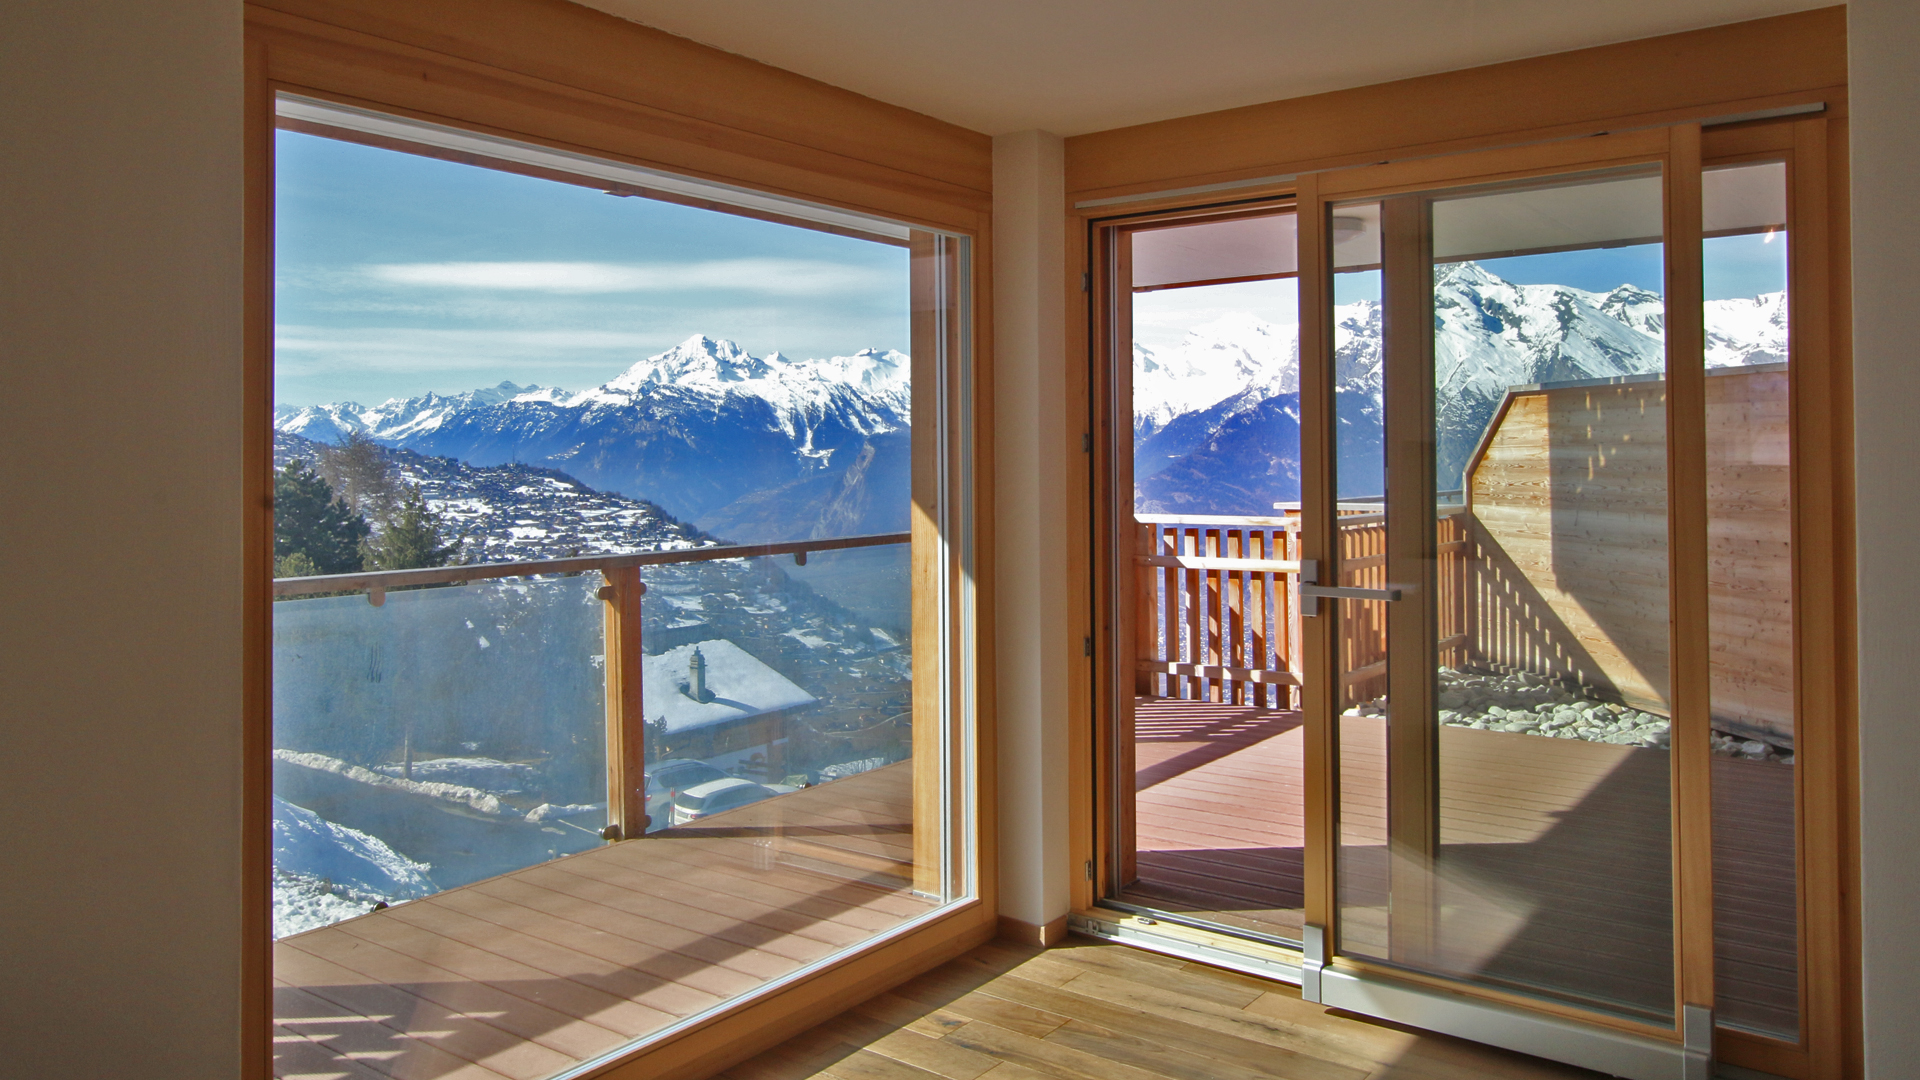 Ski Heaven 7 Apartments, Switzerland